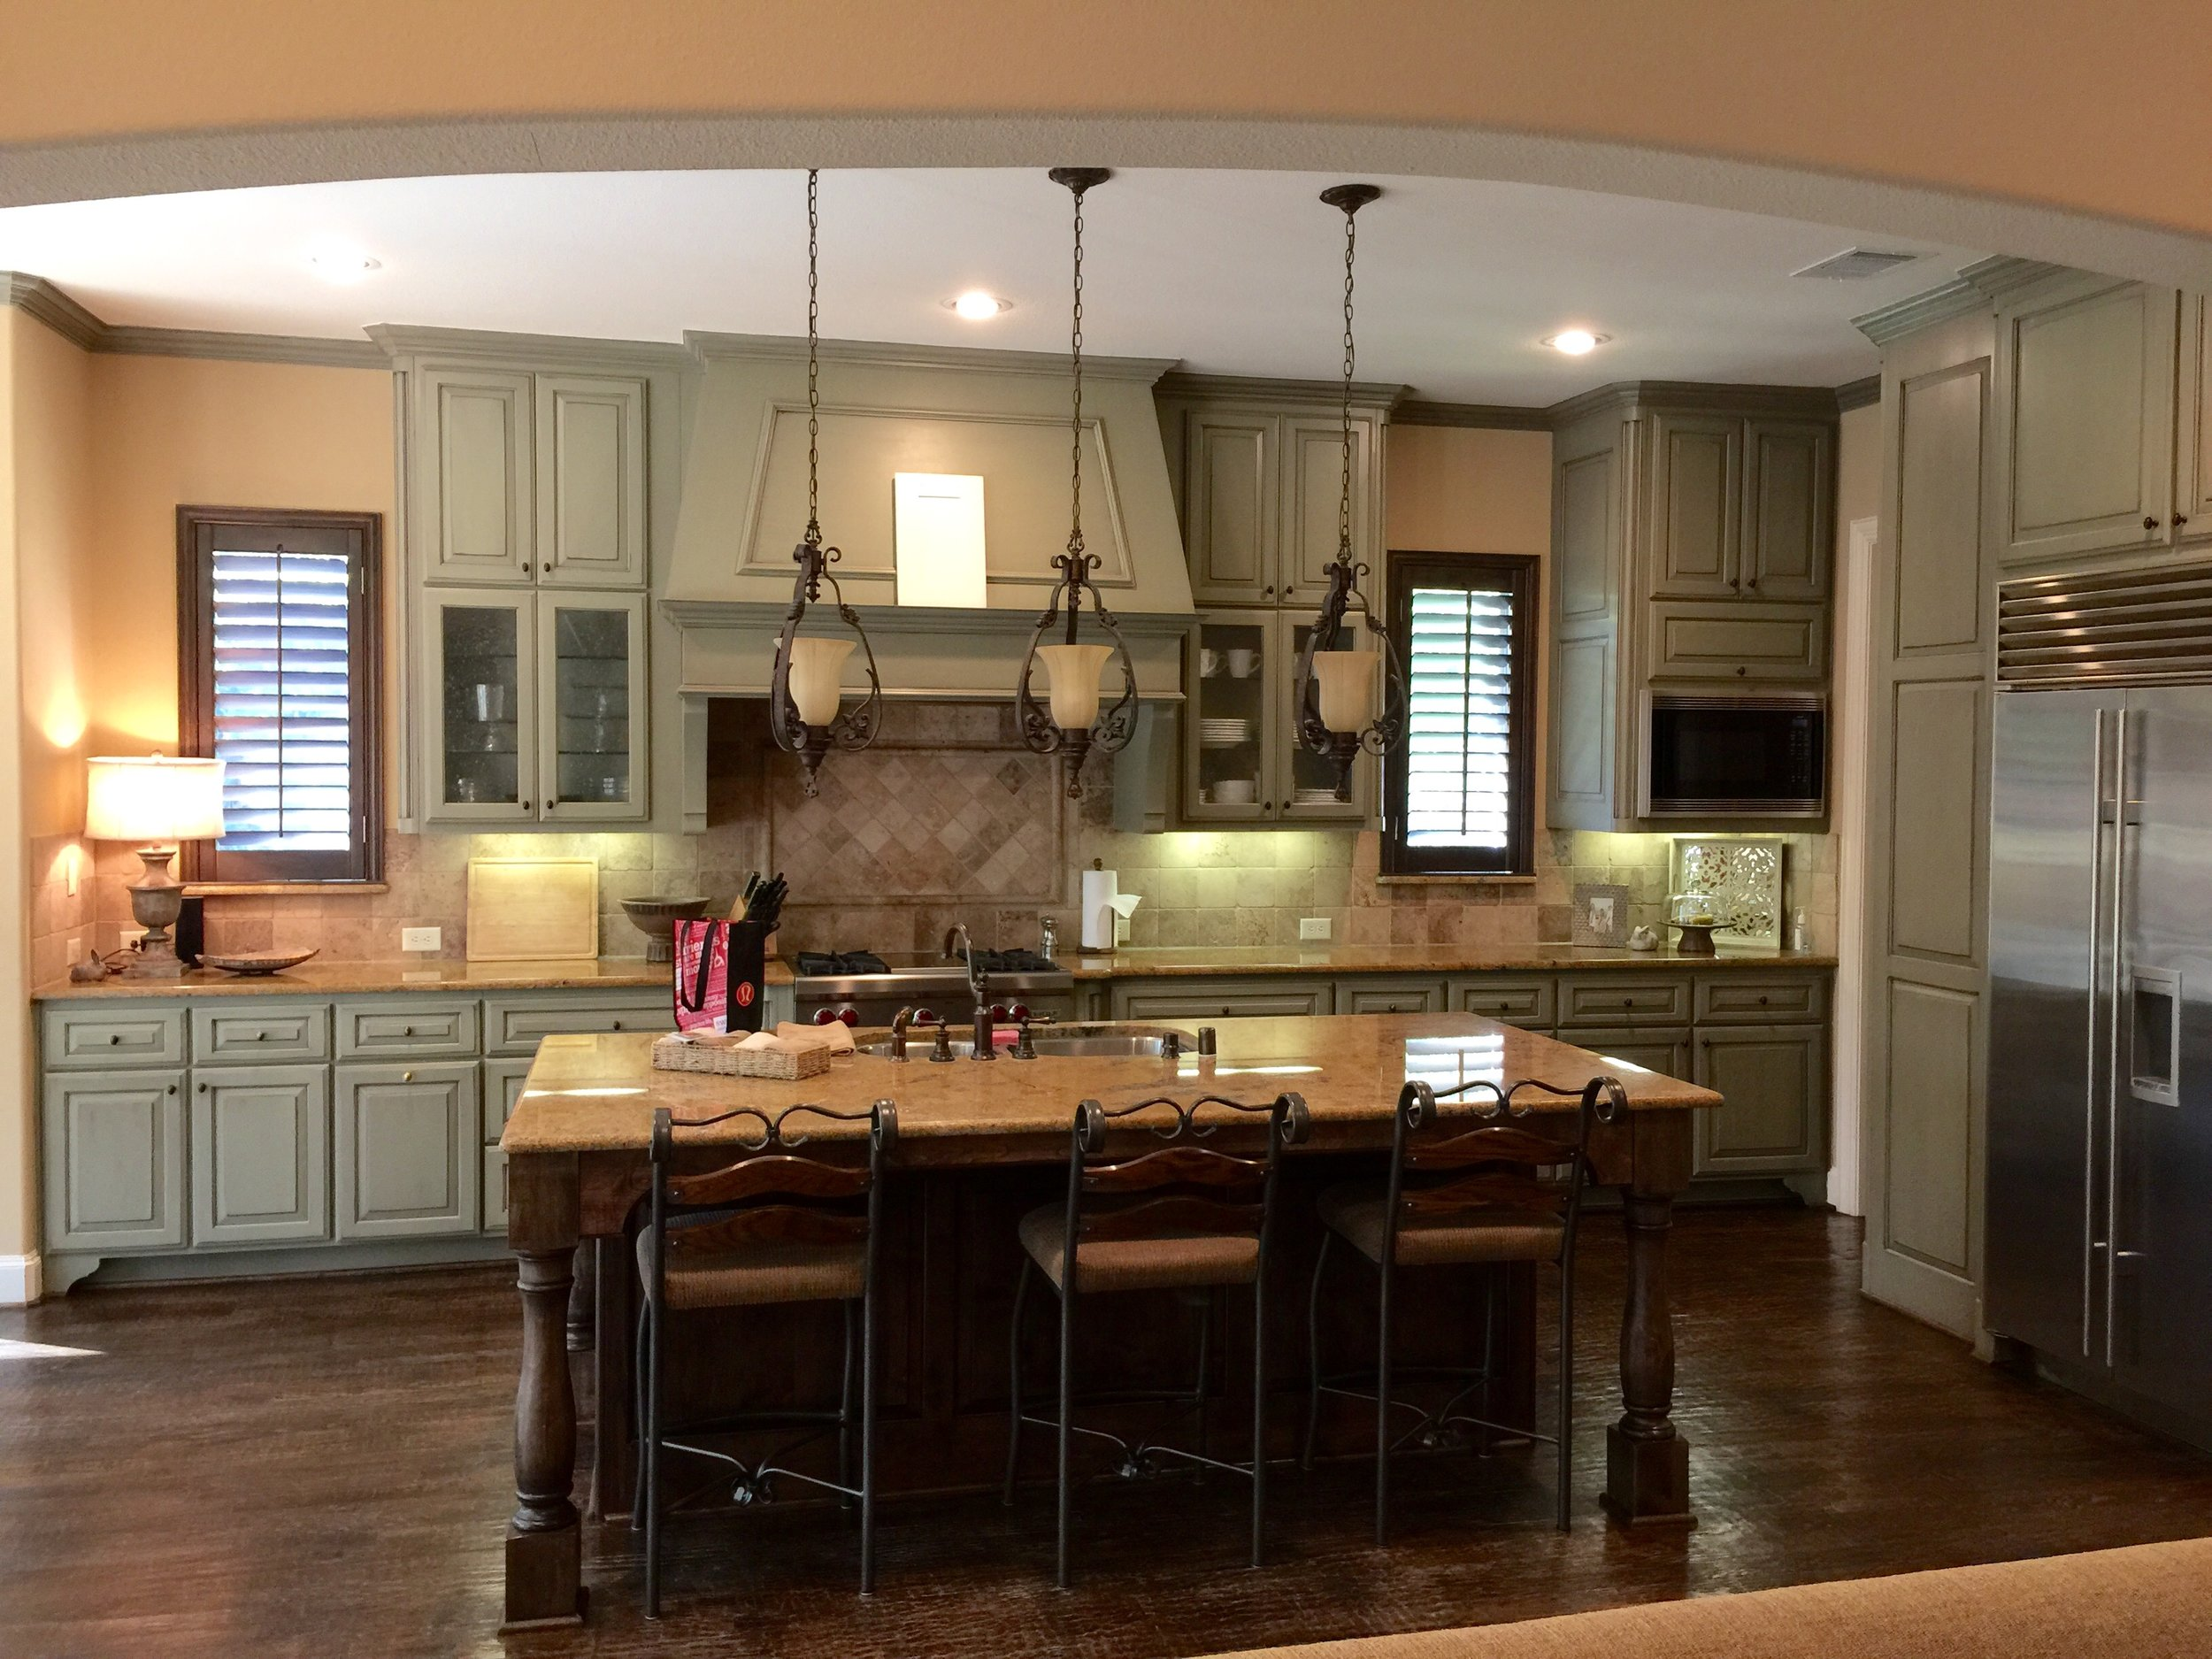 BEFORE Remodel - three pendants over kitchen island